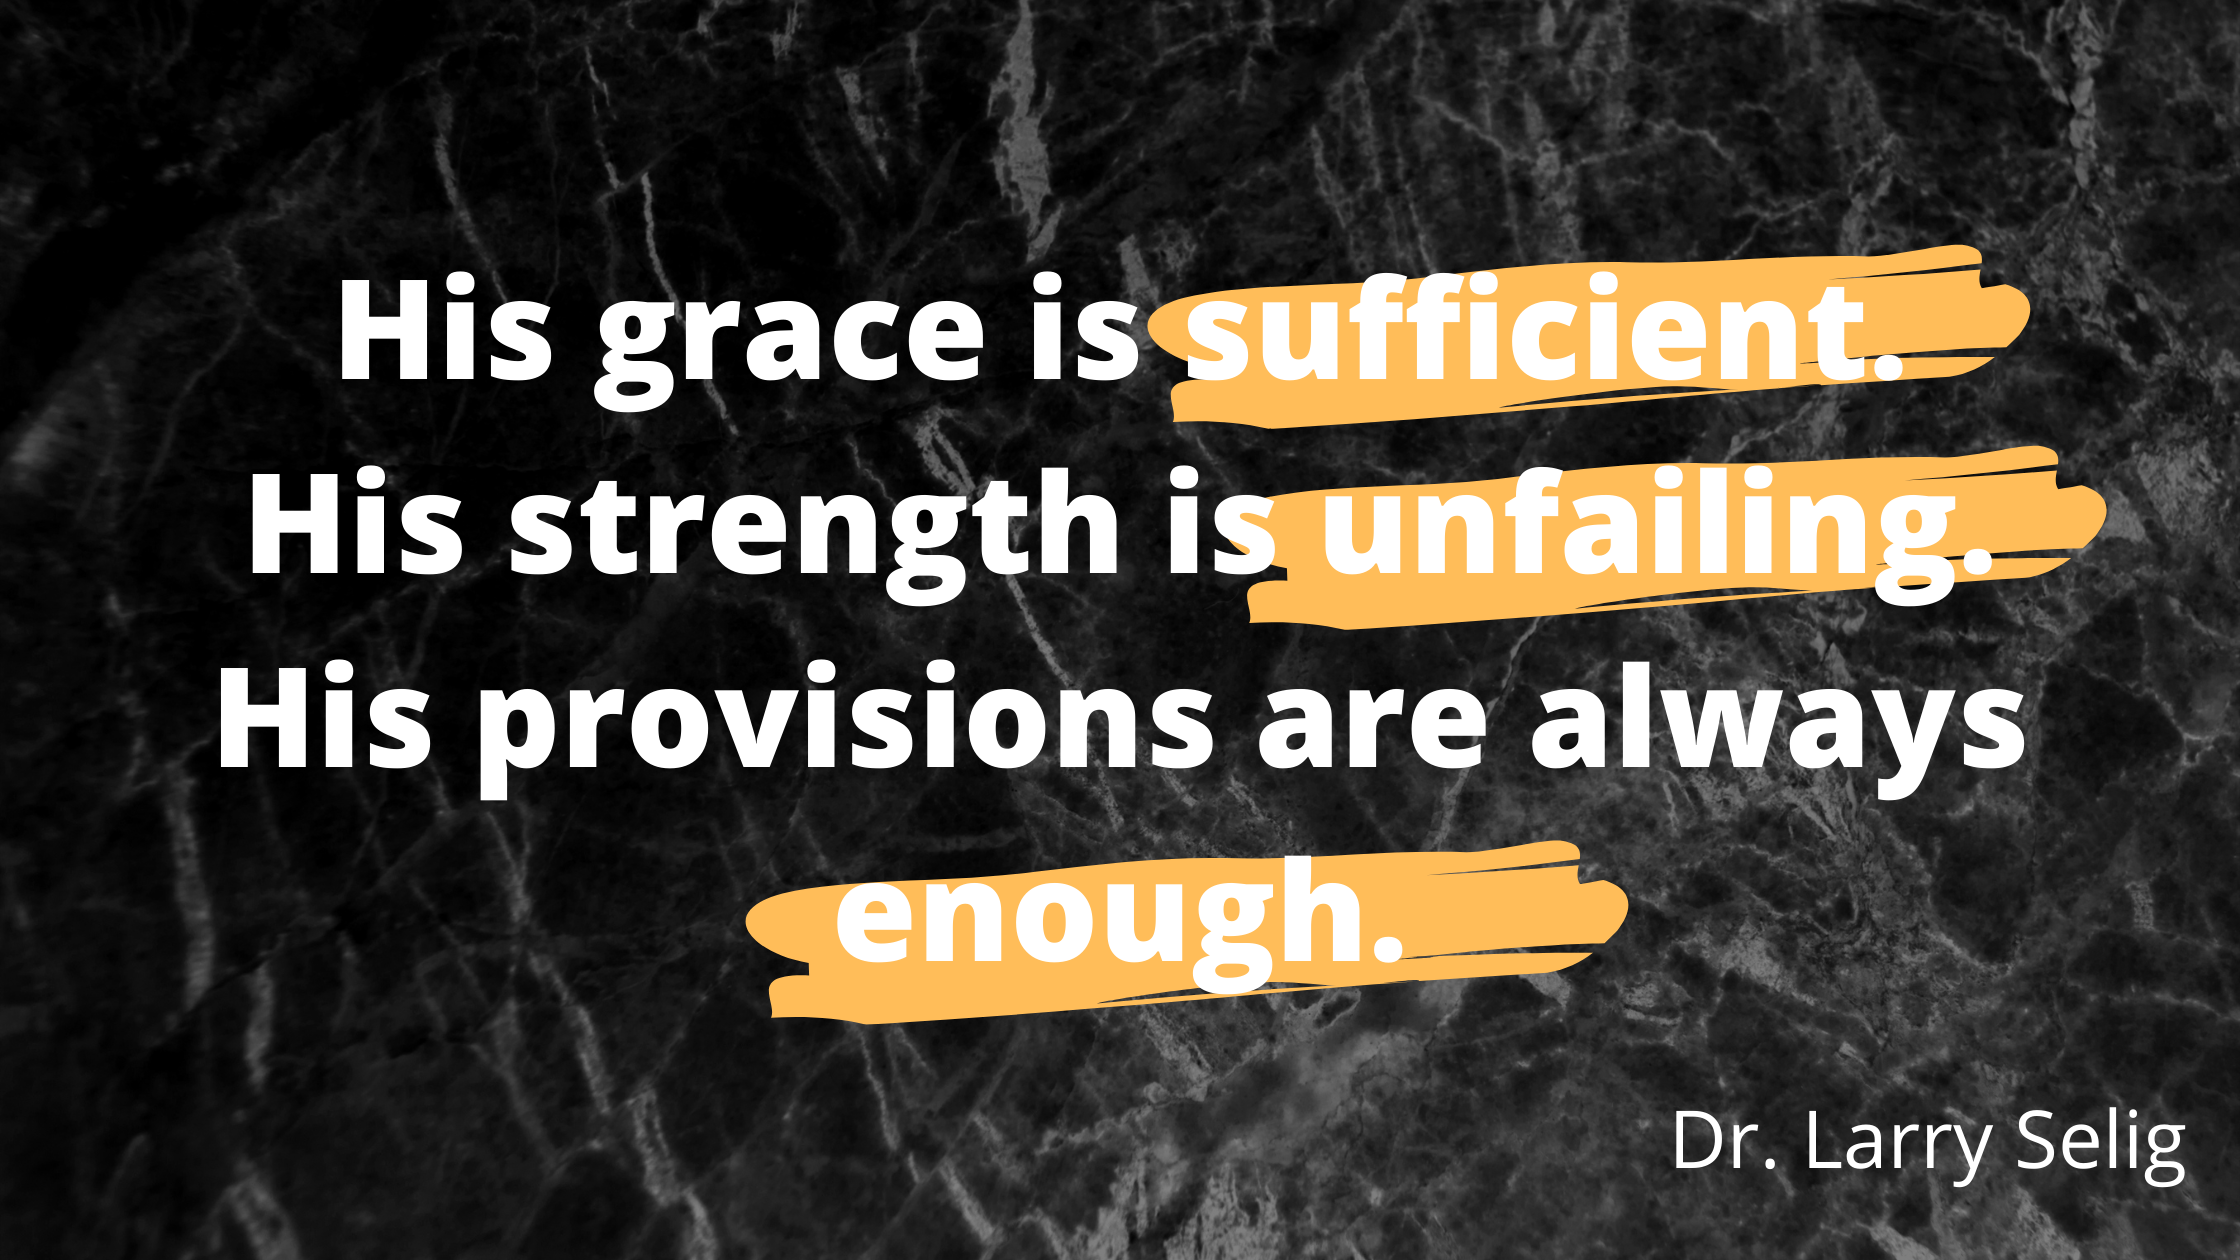 His grace is sufficient. His strength is unfailing. His provisions are always enough.